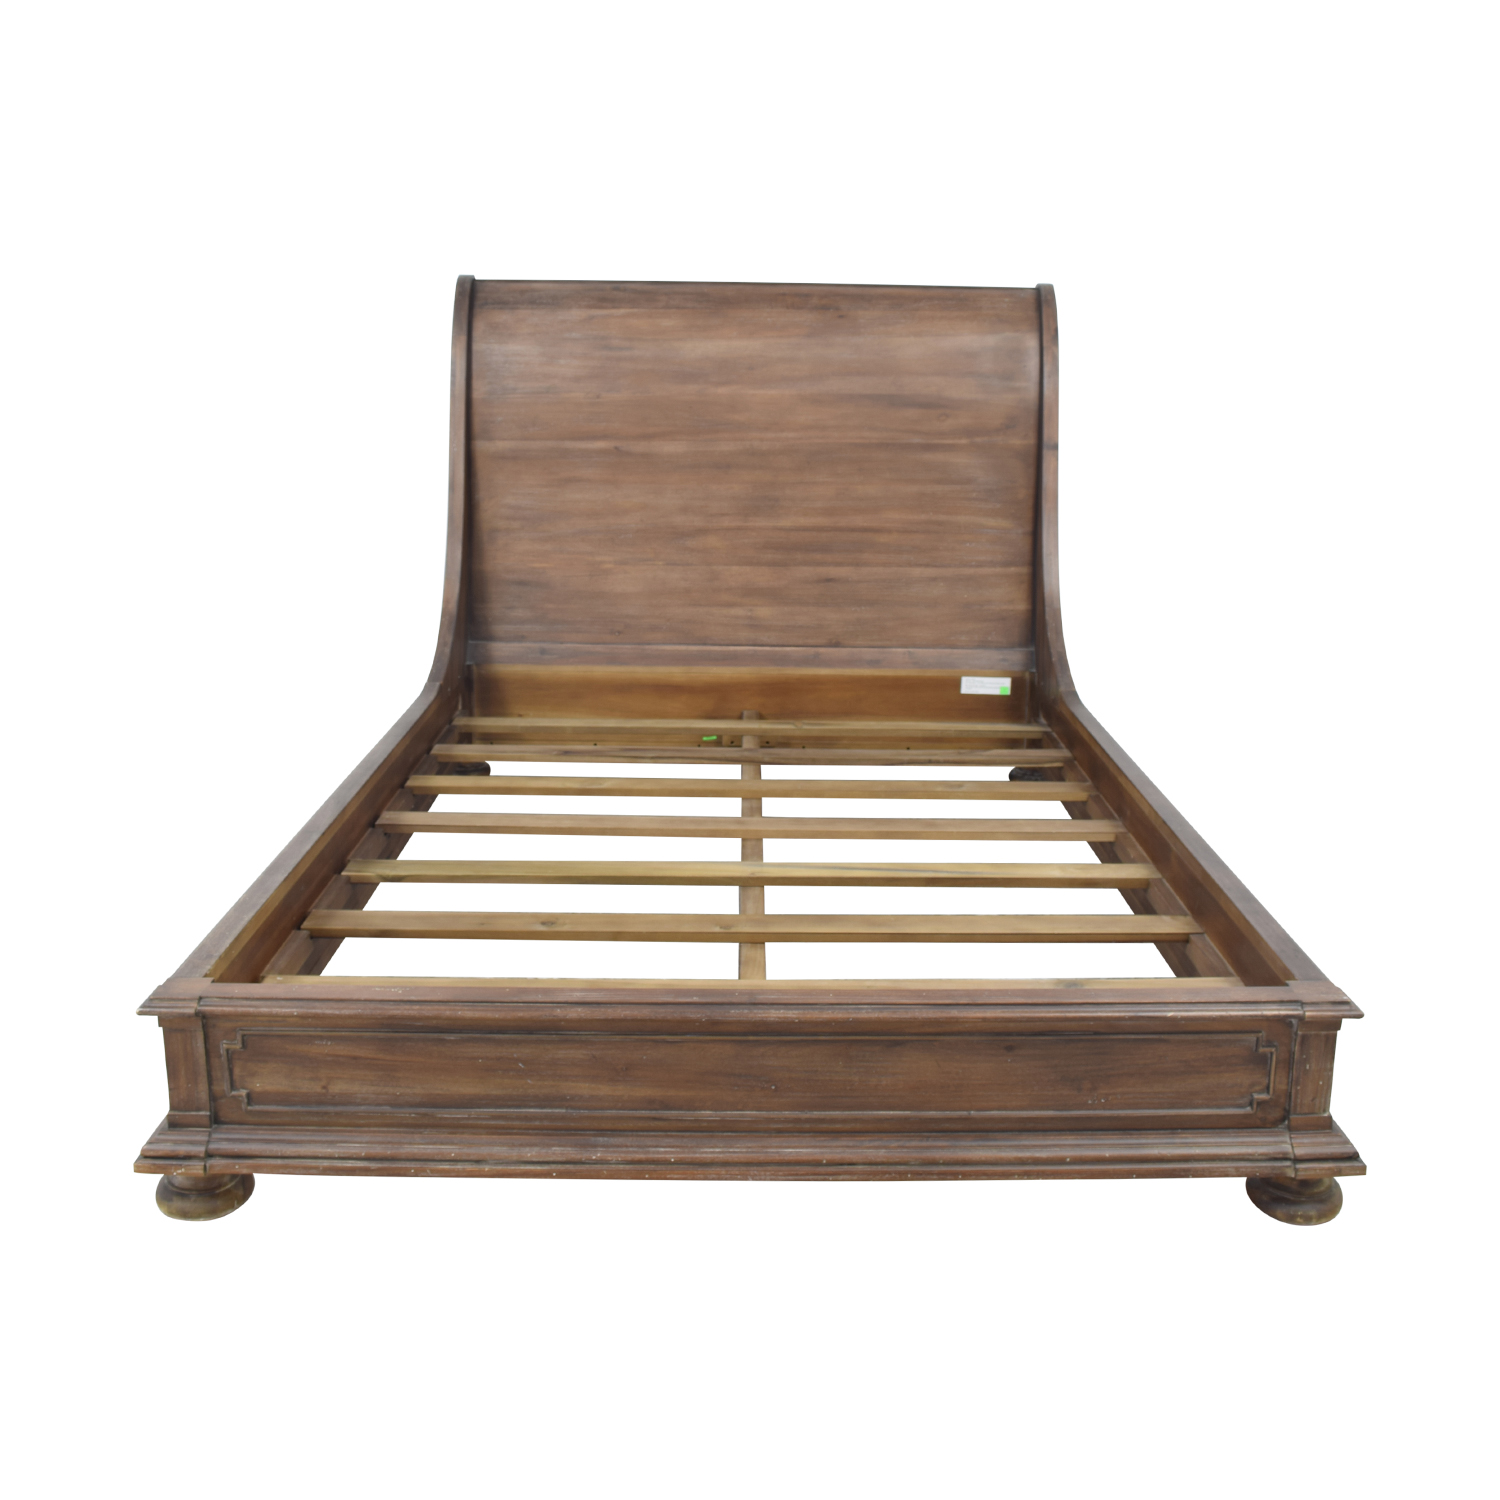 Restoration Hardware Restoration Hardware St. James Sleigh Bed for sale